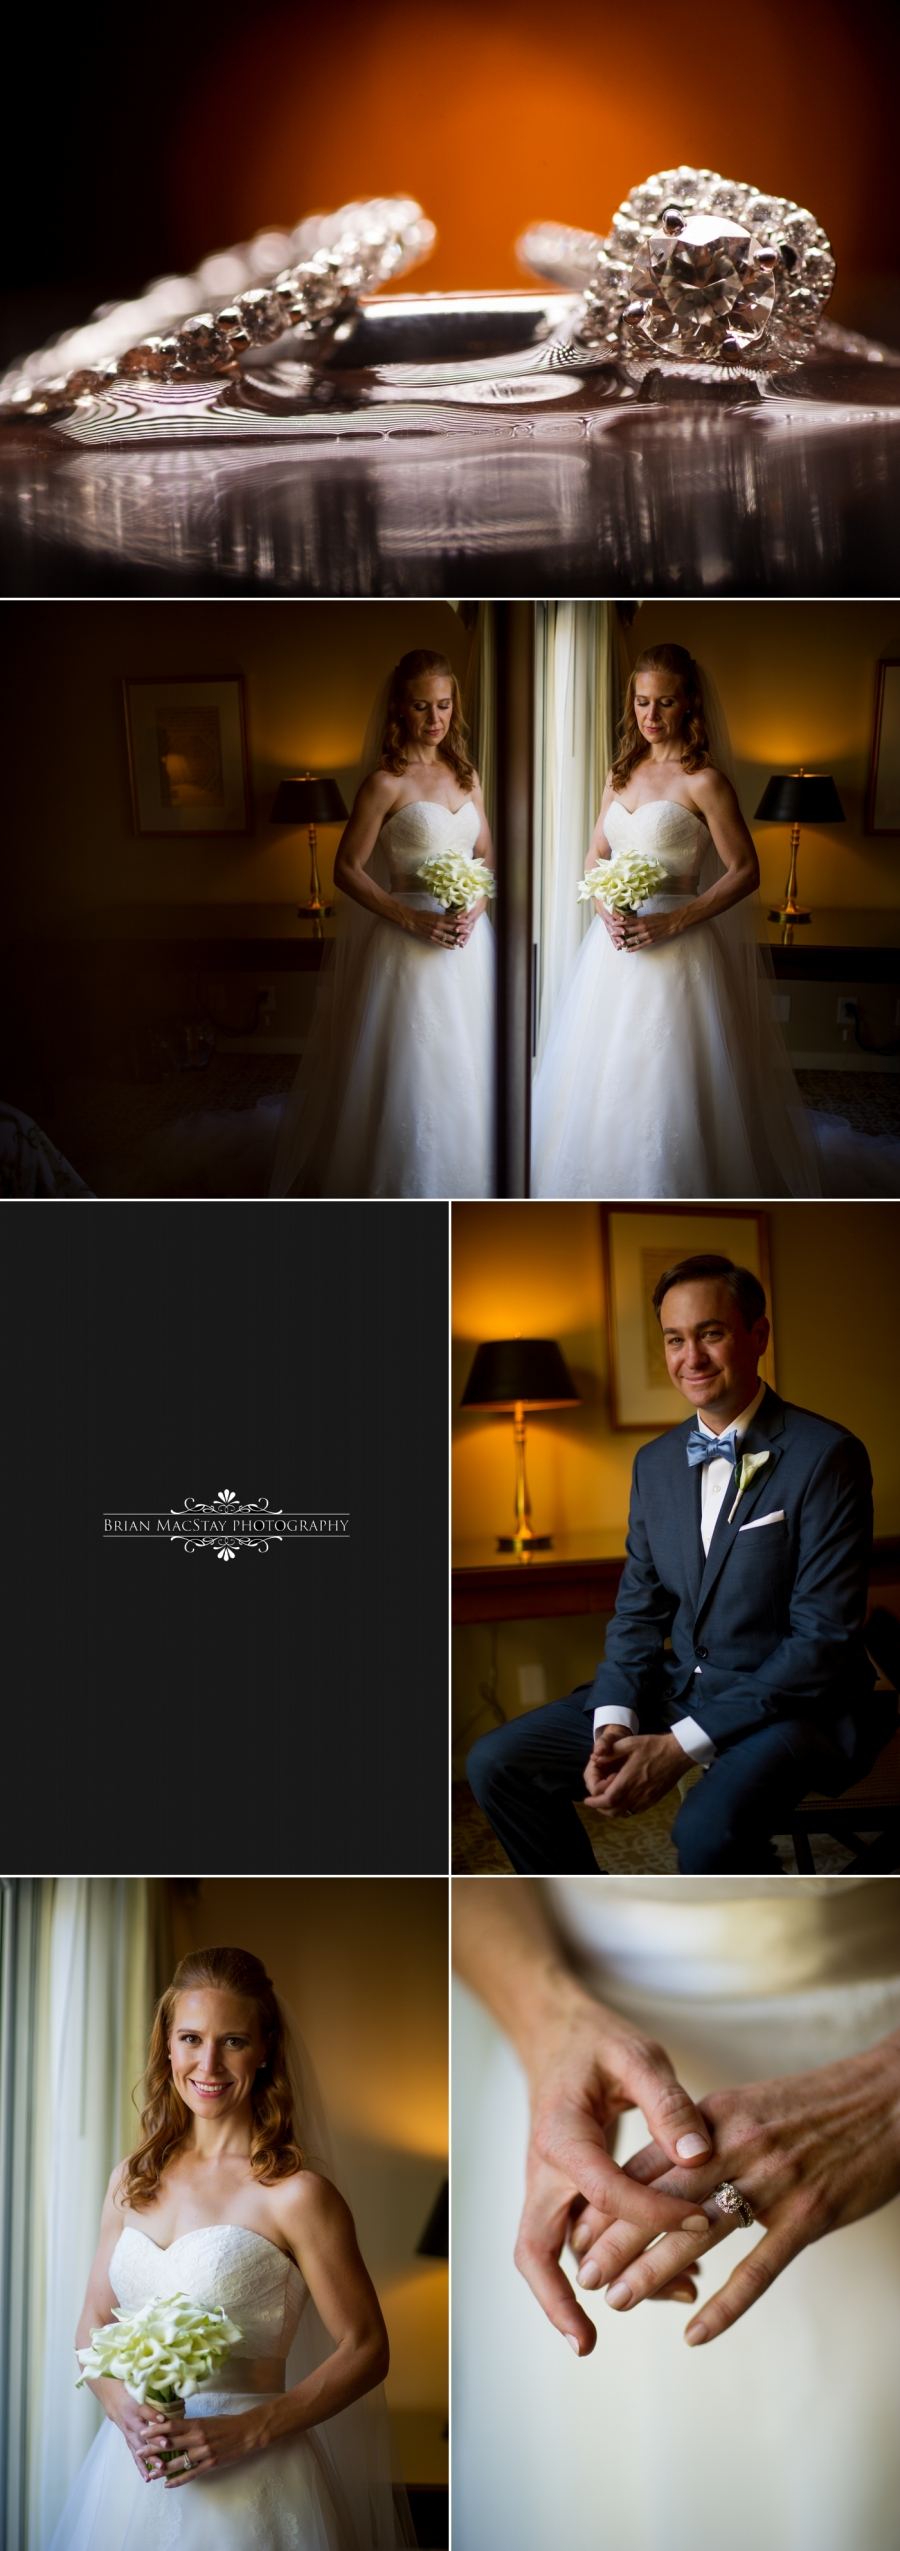 Wedding Photos at Stanford University and Stanford Park Hotel 7